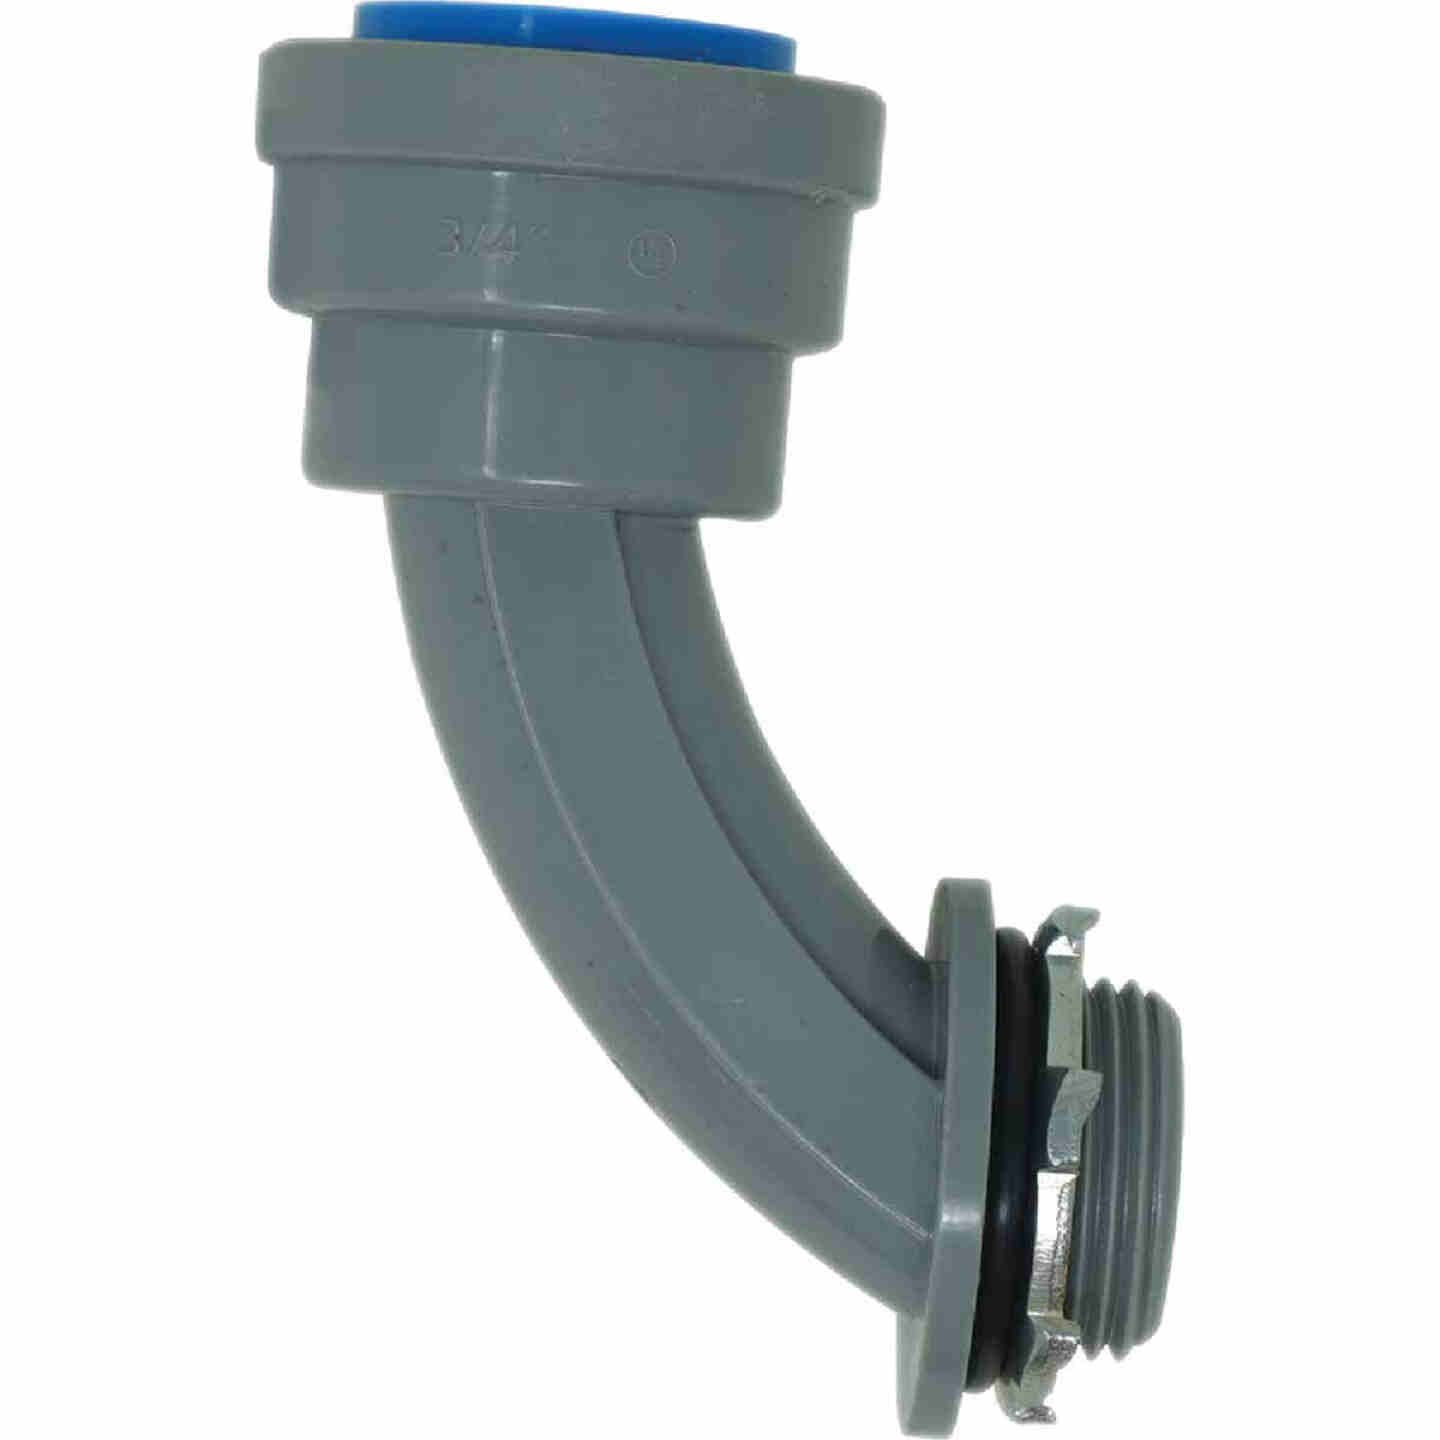 Southwire SimPush 3/4 In. PVC-CIC Push-To-Install 90 Degree Elbow Image 1